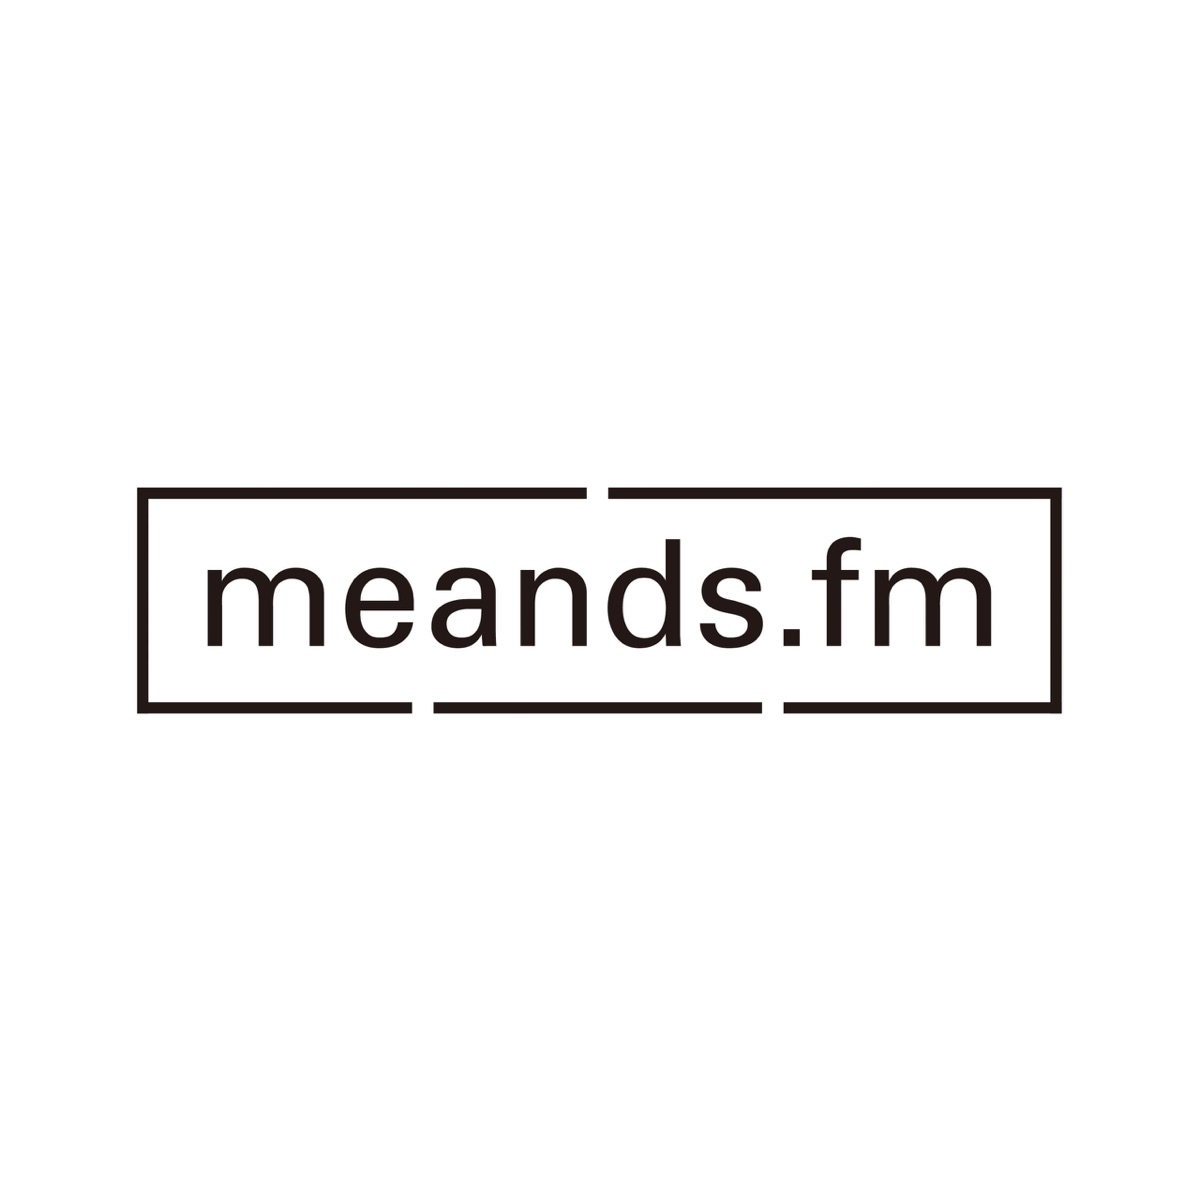 meands.fm(ミーンズ エフエム)